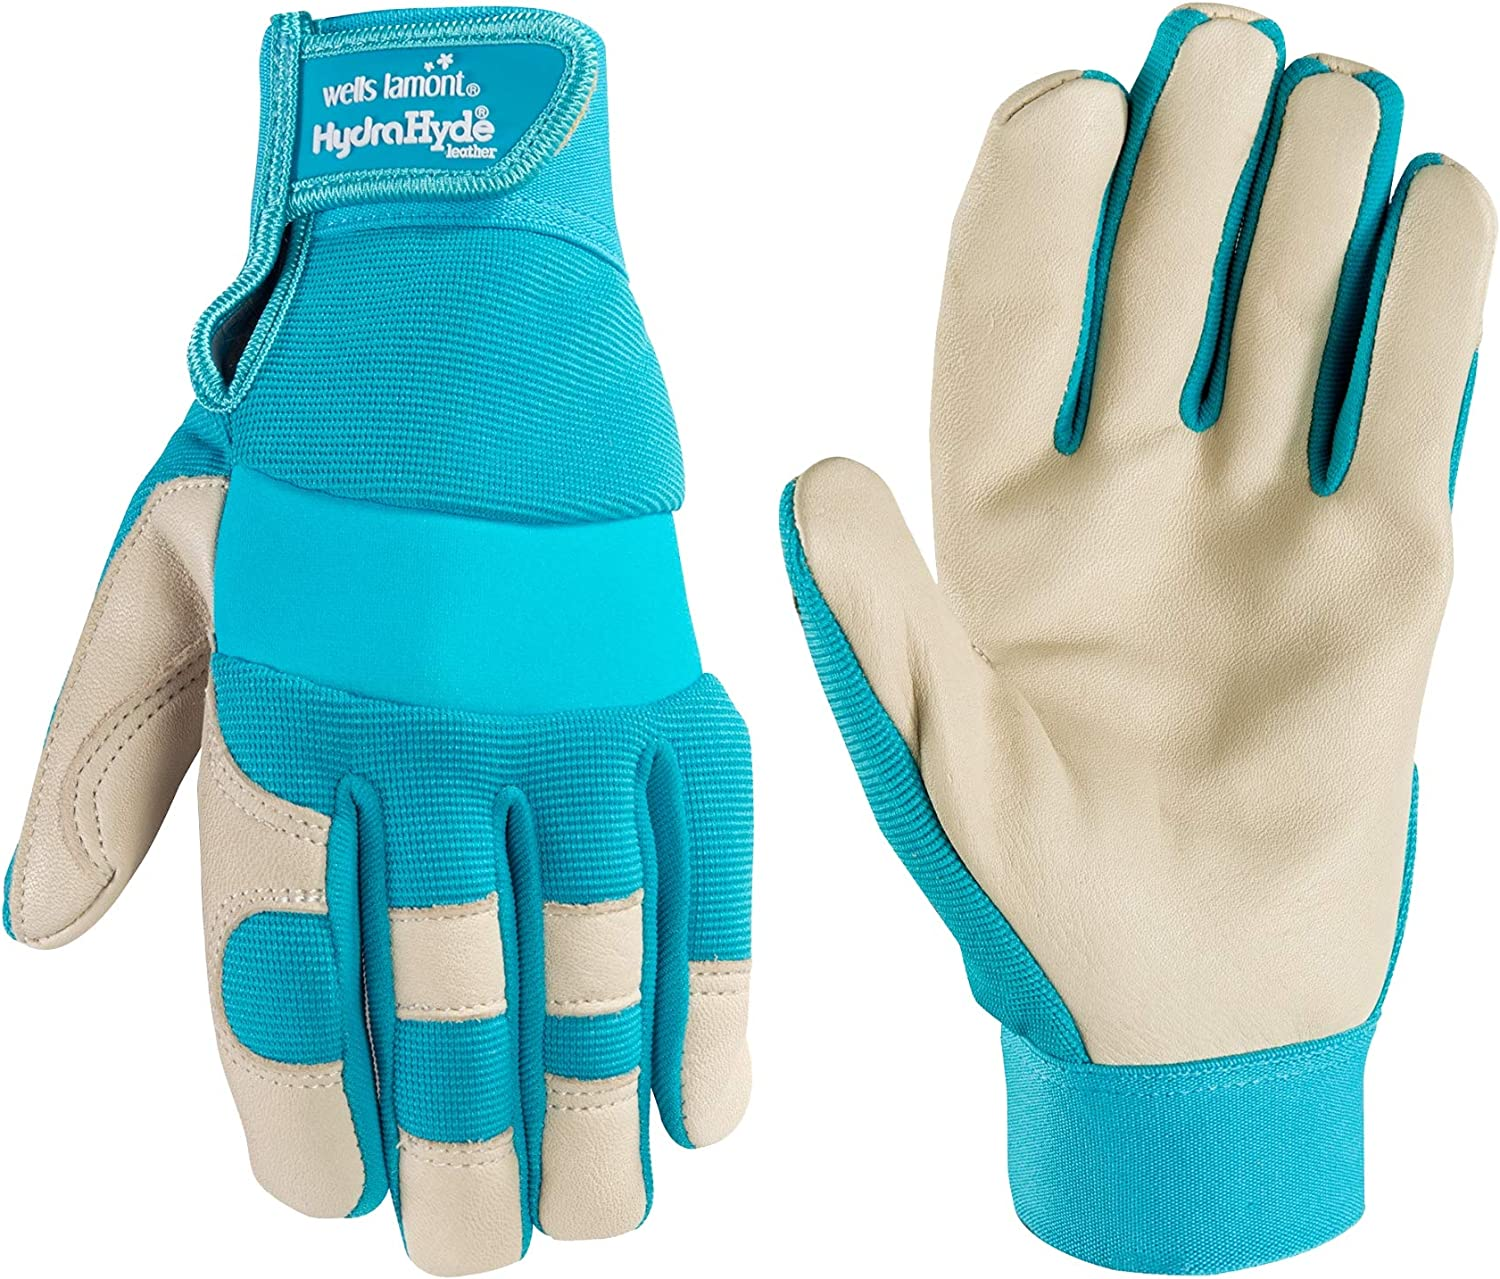 Women's HydraHyde Water-Resistant Work, Gardening Gloves, Large (Wells Lamont 3204)